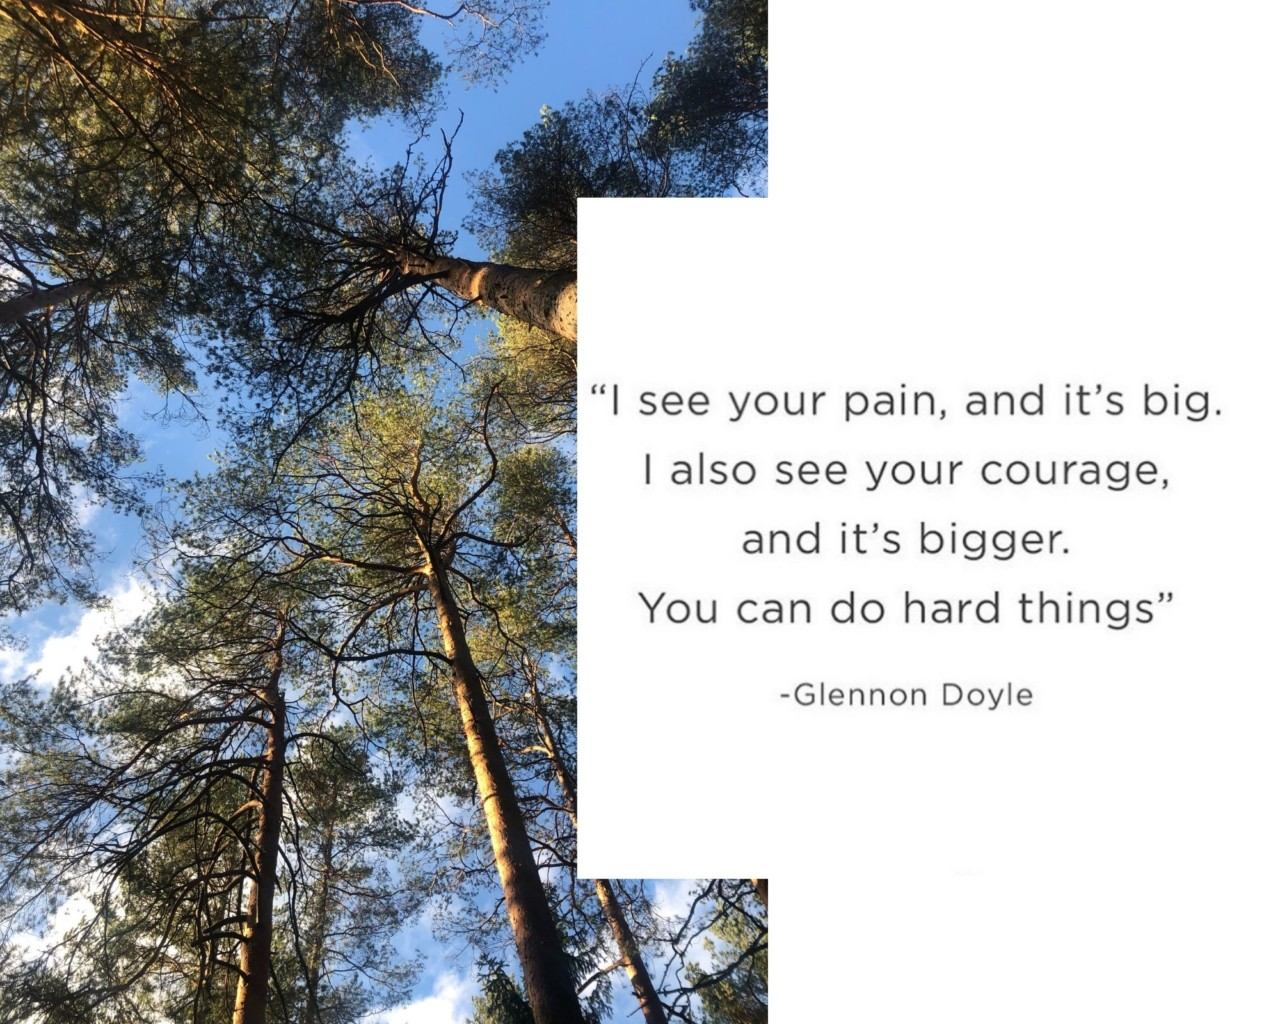 glennon-doyle-quote-pain-courage-you-can-do-hard-things